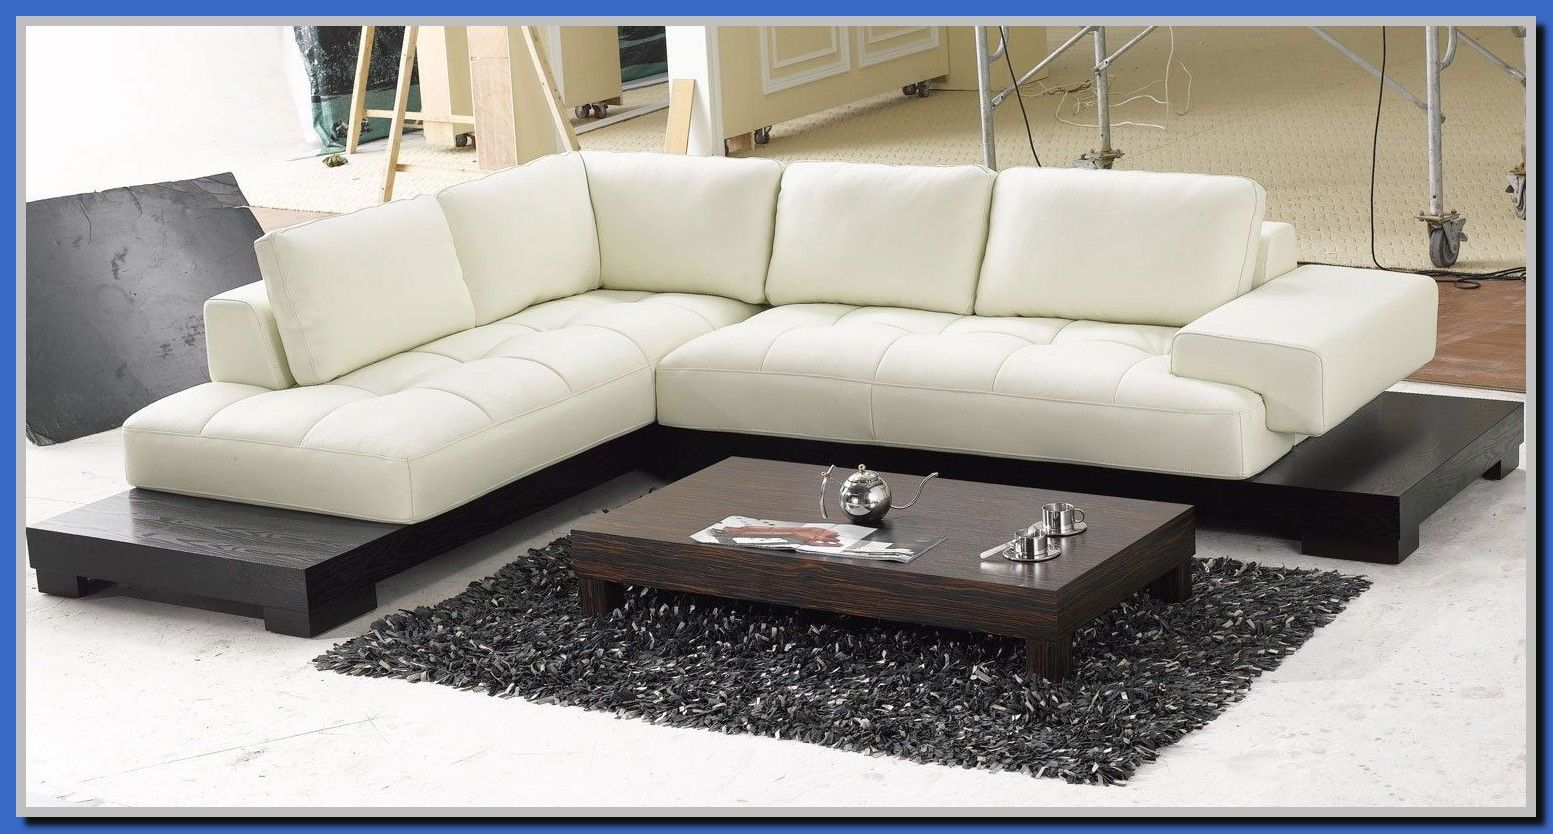 46 Reference Of L Shape Sofa White Leather In 2020 Sofa Makeover Modern Leather Sofa Elegant Sofa